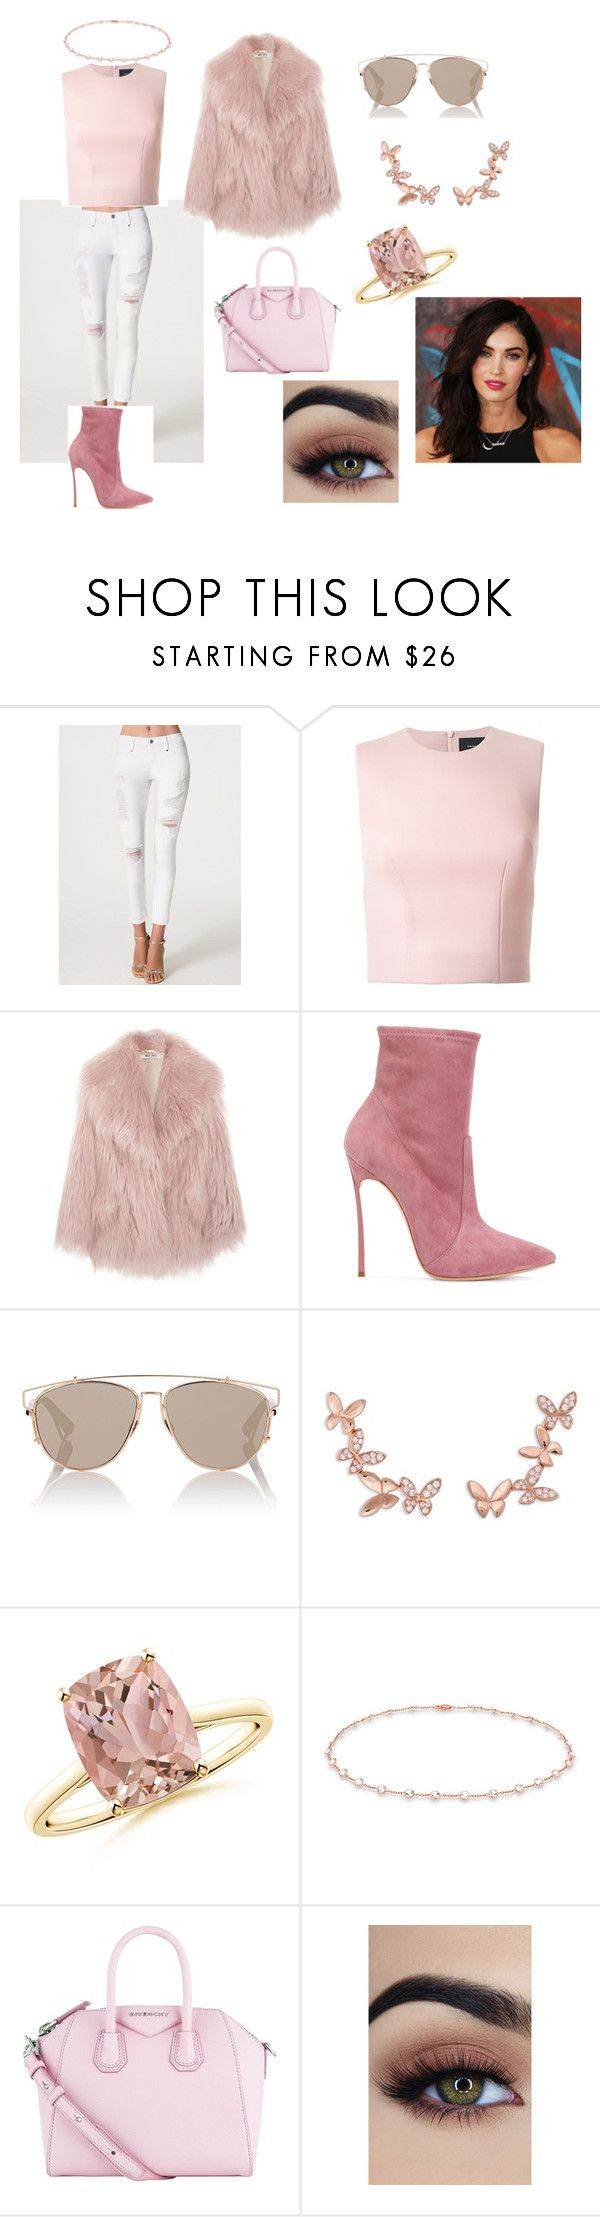 """Brittney"" by mrstomlinson974 on Polyvore featuring Bebe, Simone Rocha, Miu Miu, Casadei, Christian Dior, Anyallerie, Anne Sisteron and Givenchy"